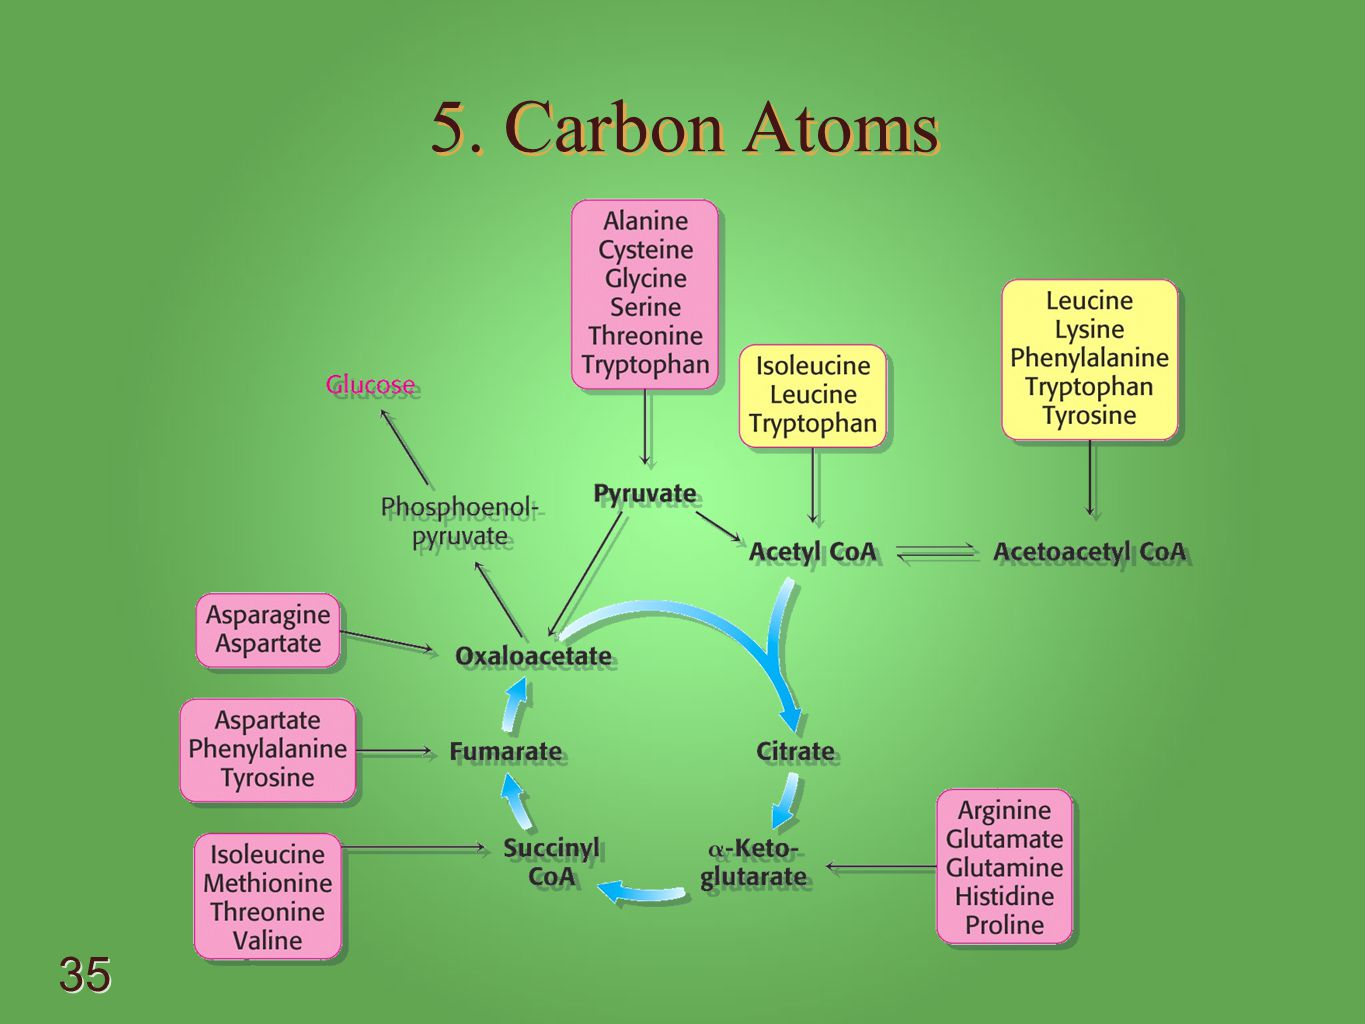 5. Carbon Atoms - Alanine -